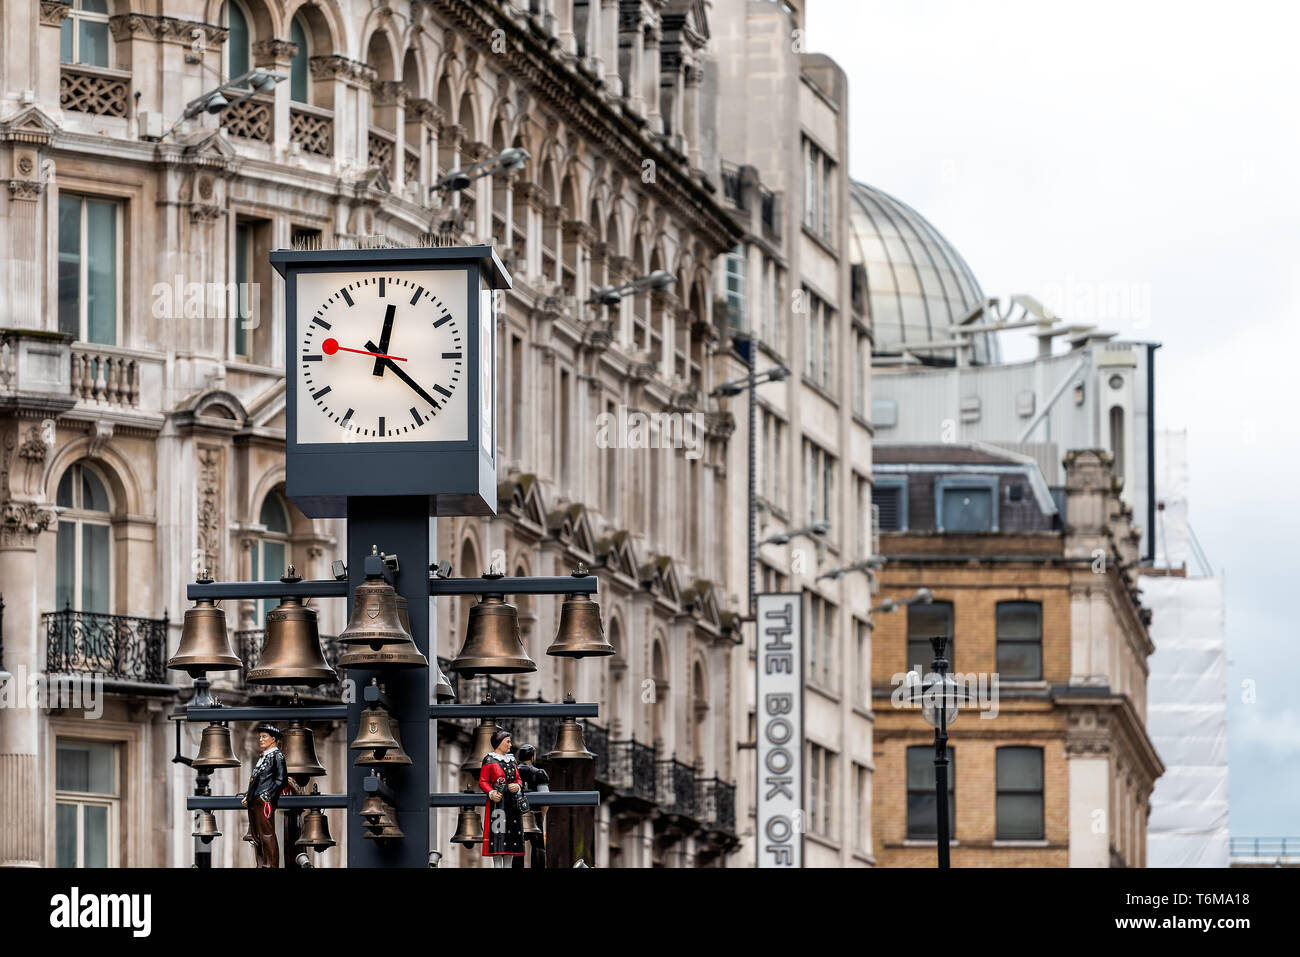 London, UK - September 12, 2018: Leicester Square clock face during day in city with old architecture and the book of mormon sign Stock Photo